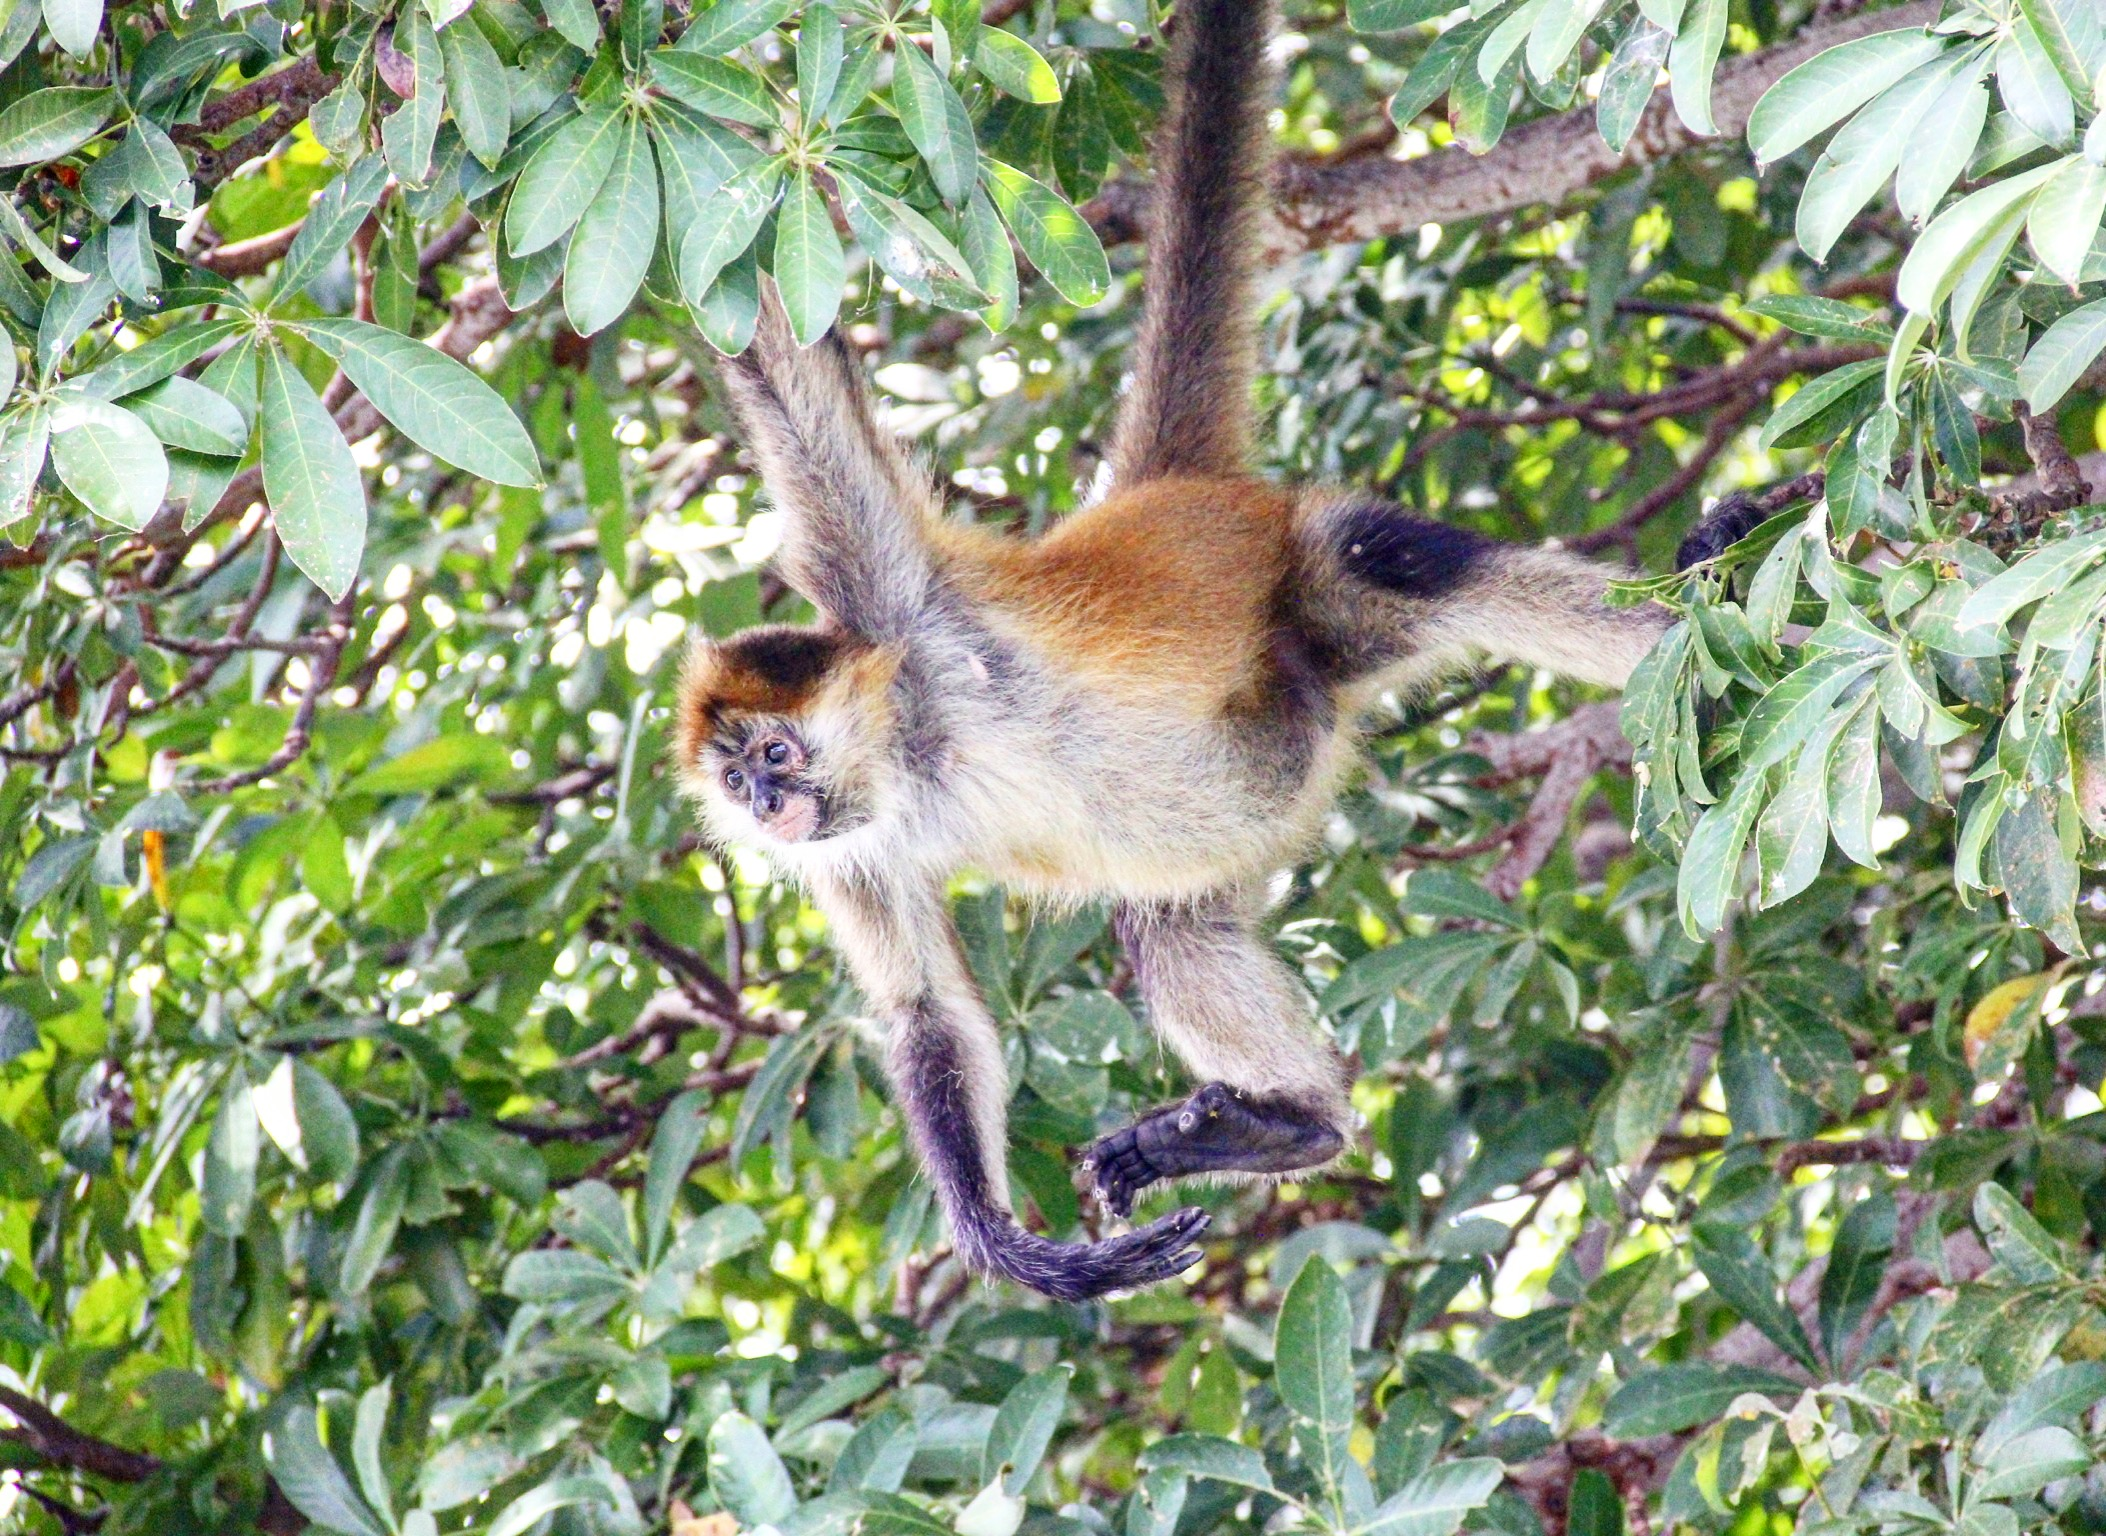 One of our friends on monkey island